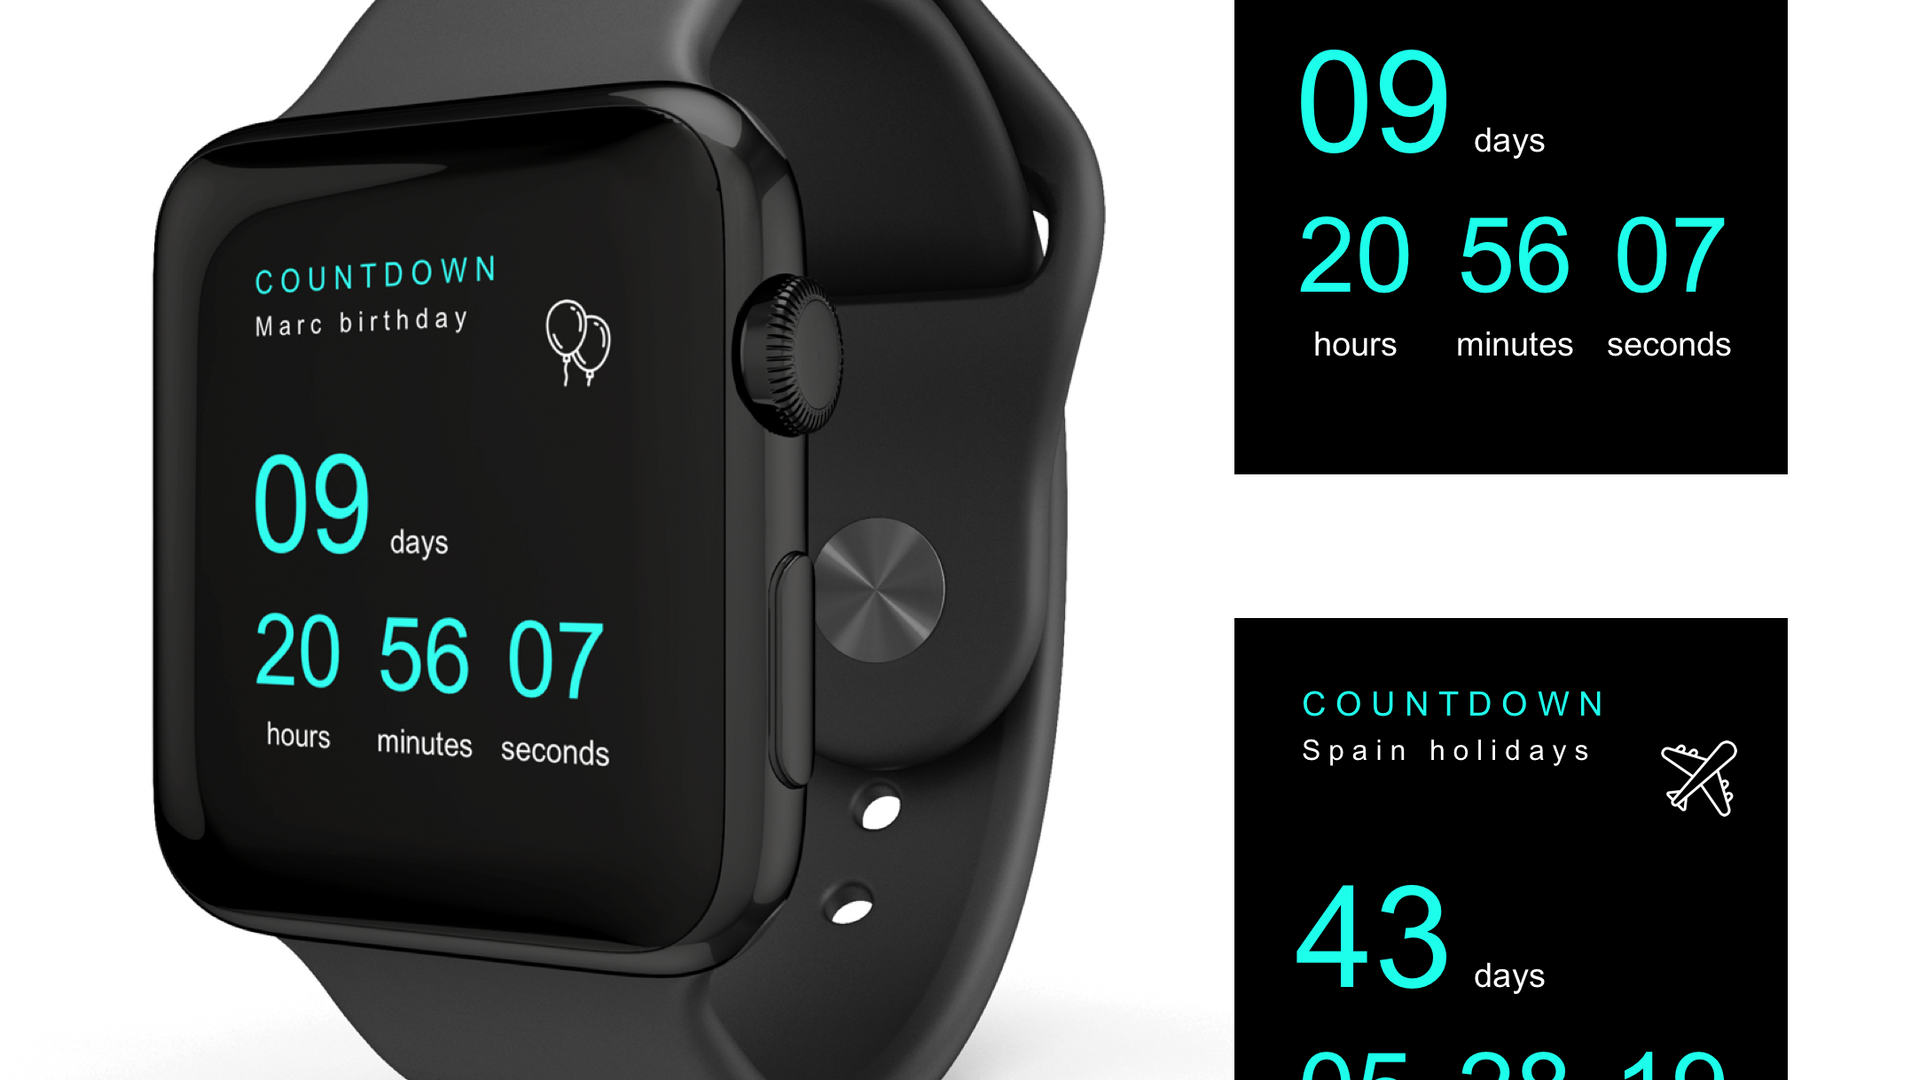 countdown apple watch.